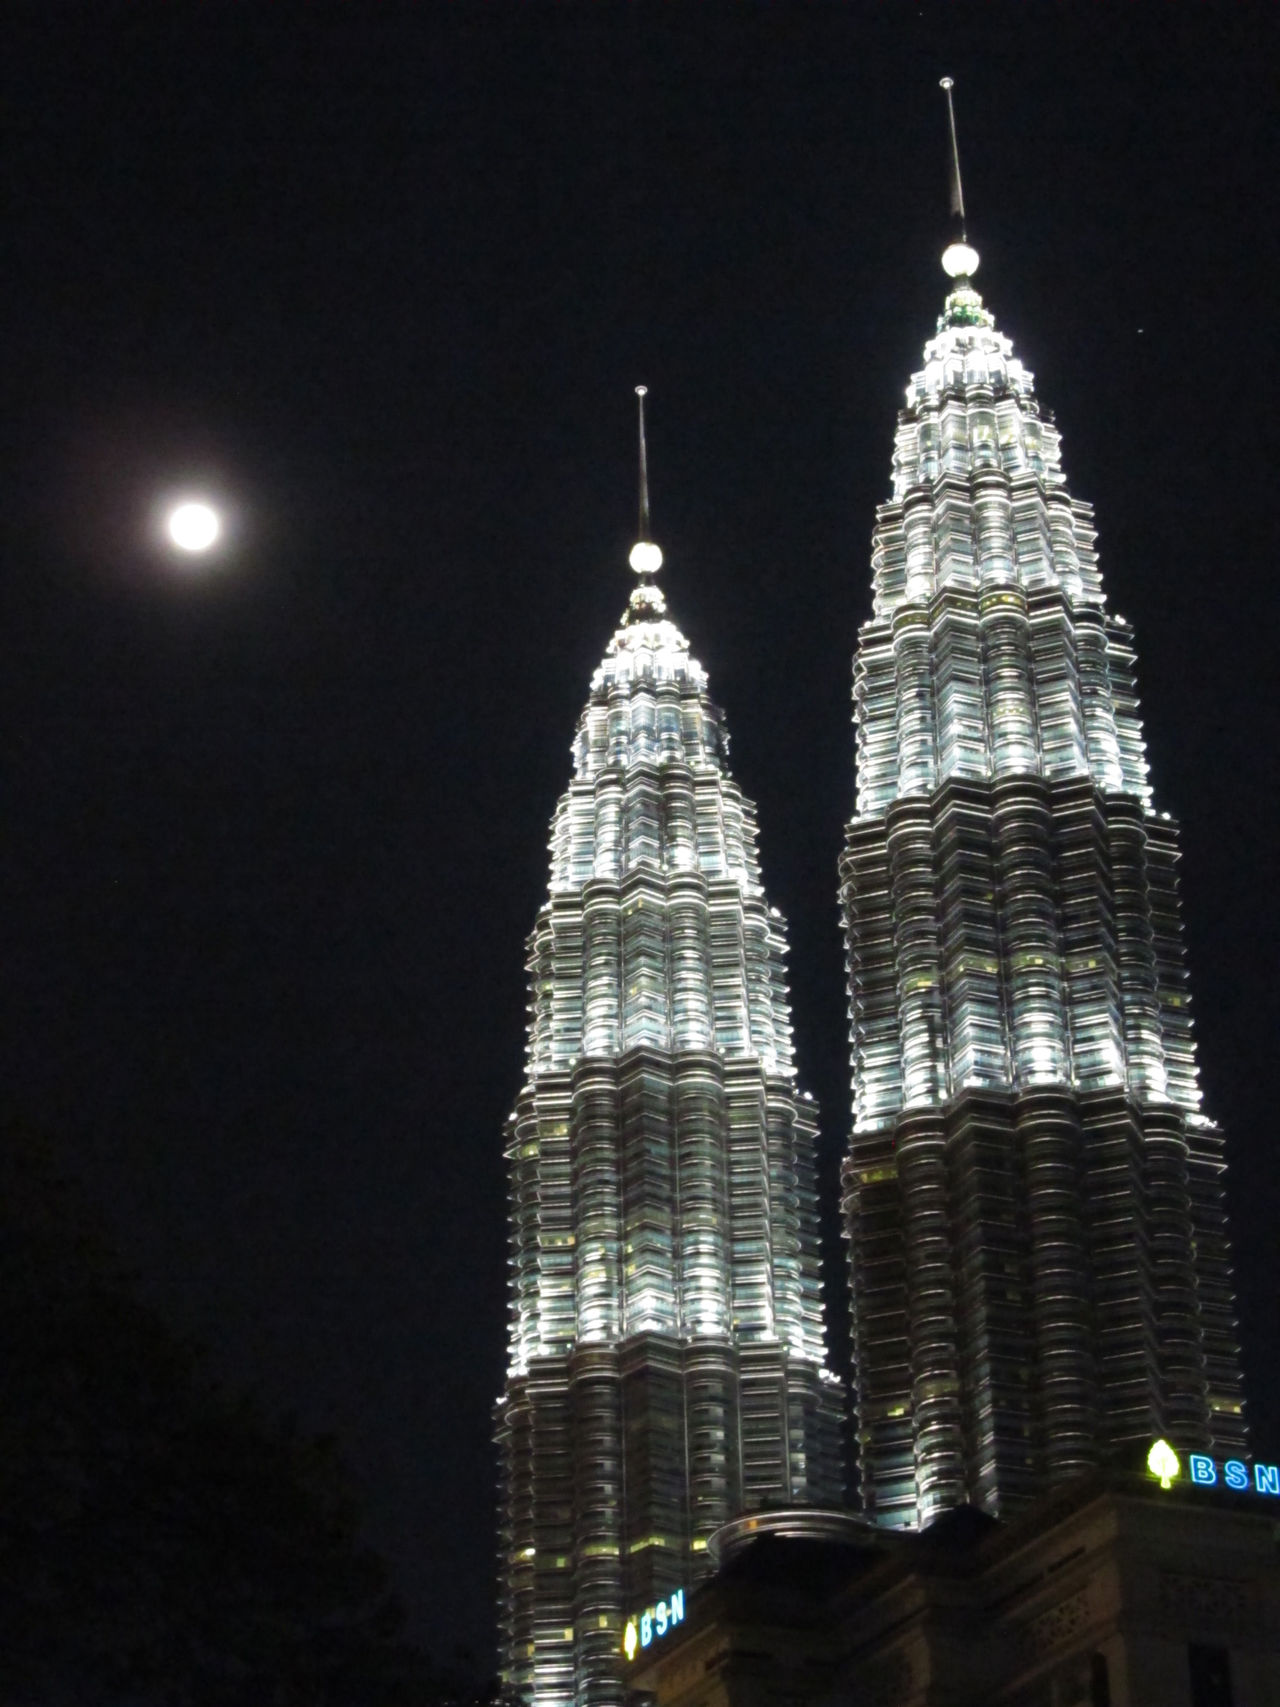 KLCC, Petronas Twin Towers at night with a full moon, Kuala Lumpur, Malaysia City Lights Full Moon Klcc Klcc At Night KLCC Park KLCC Tower KLCC Twin Towers Kuala Lumpur Kuala Lumpur Malaysia  Moon Night Shot Petronas Twin Towers Tourism Travel Travel Photography